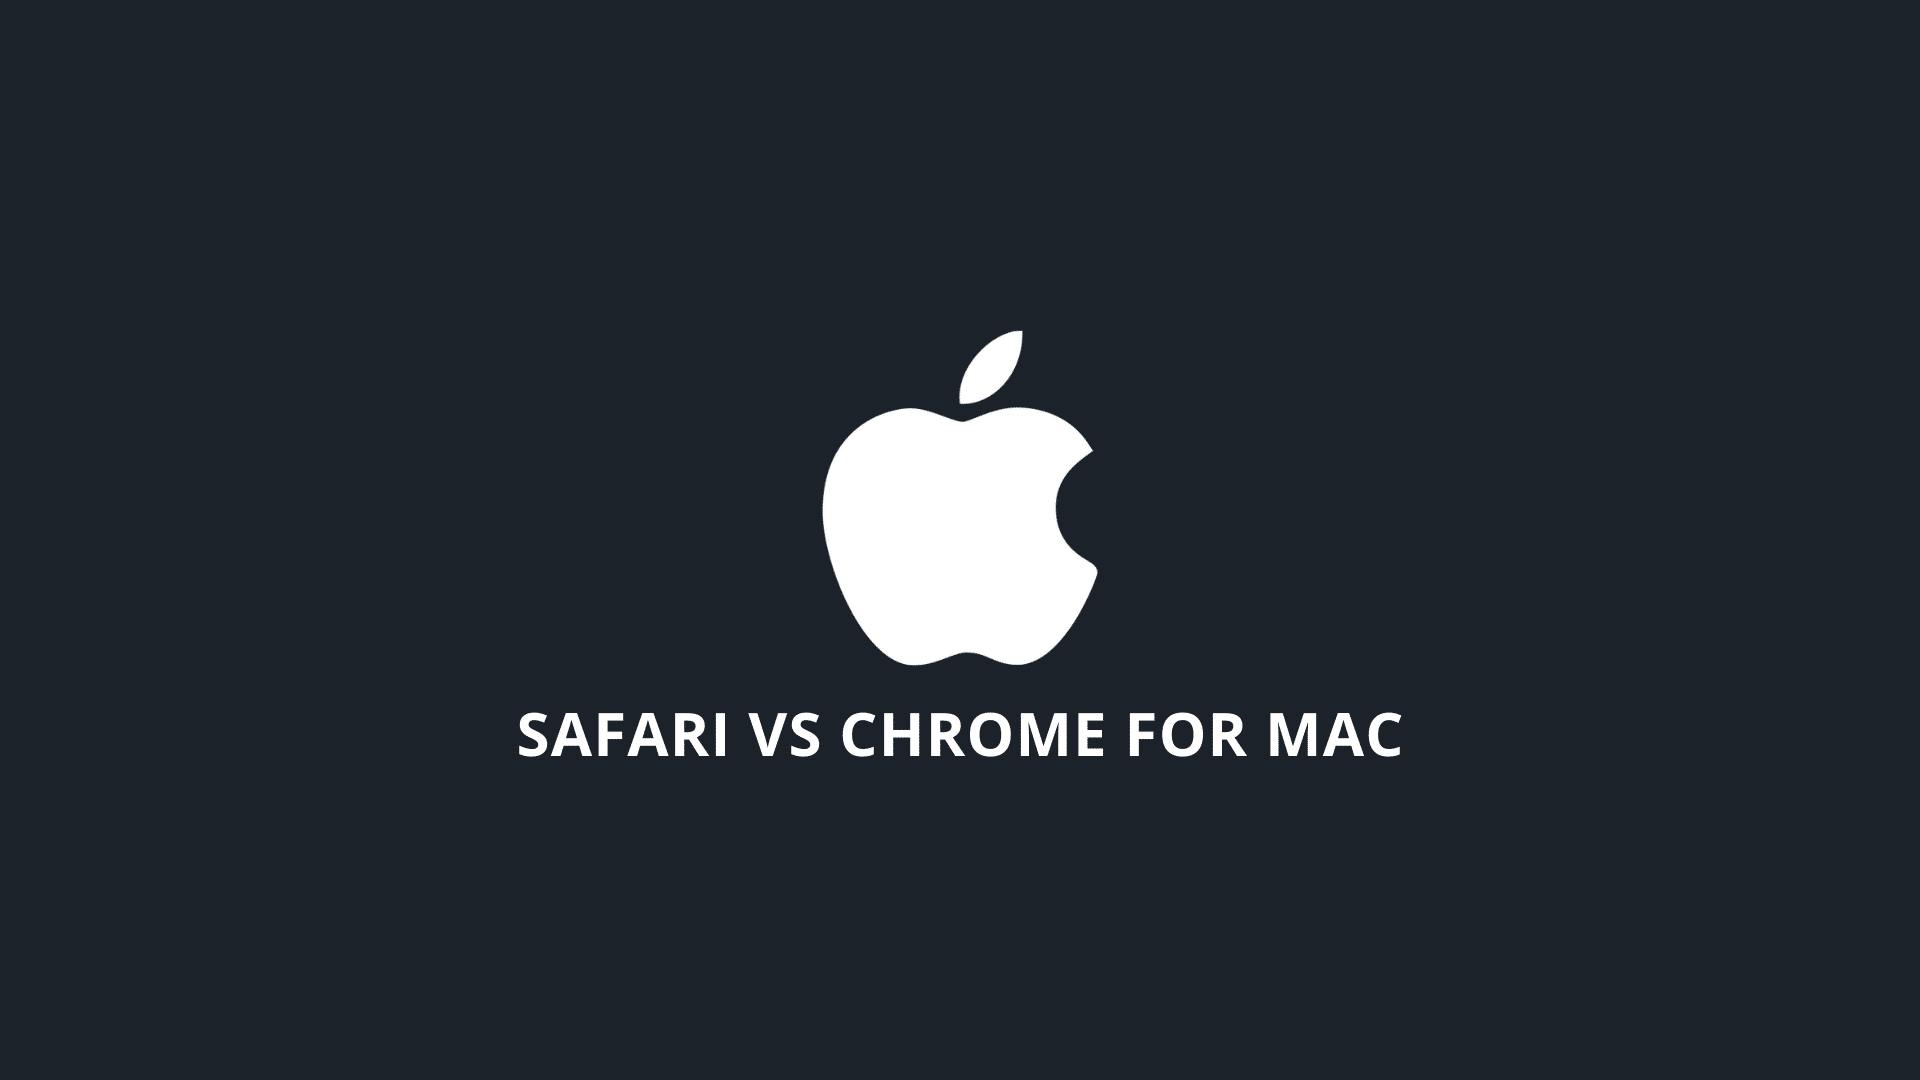 Safari vs Chrome for Mac